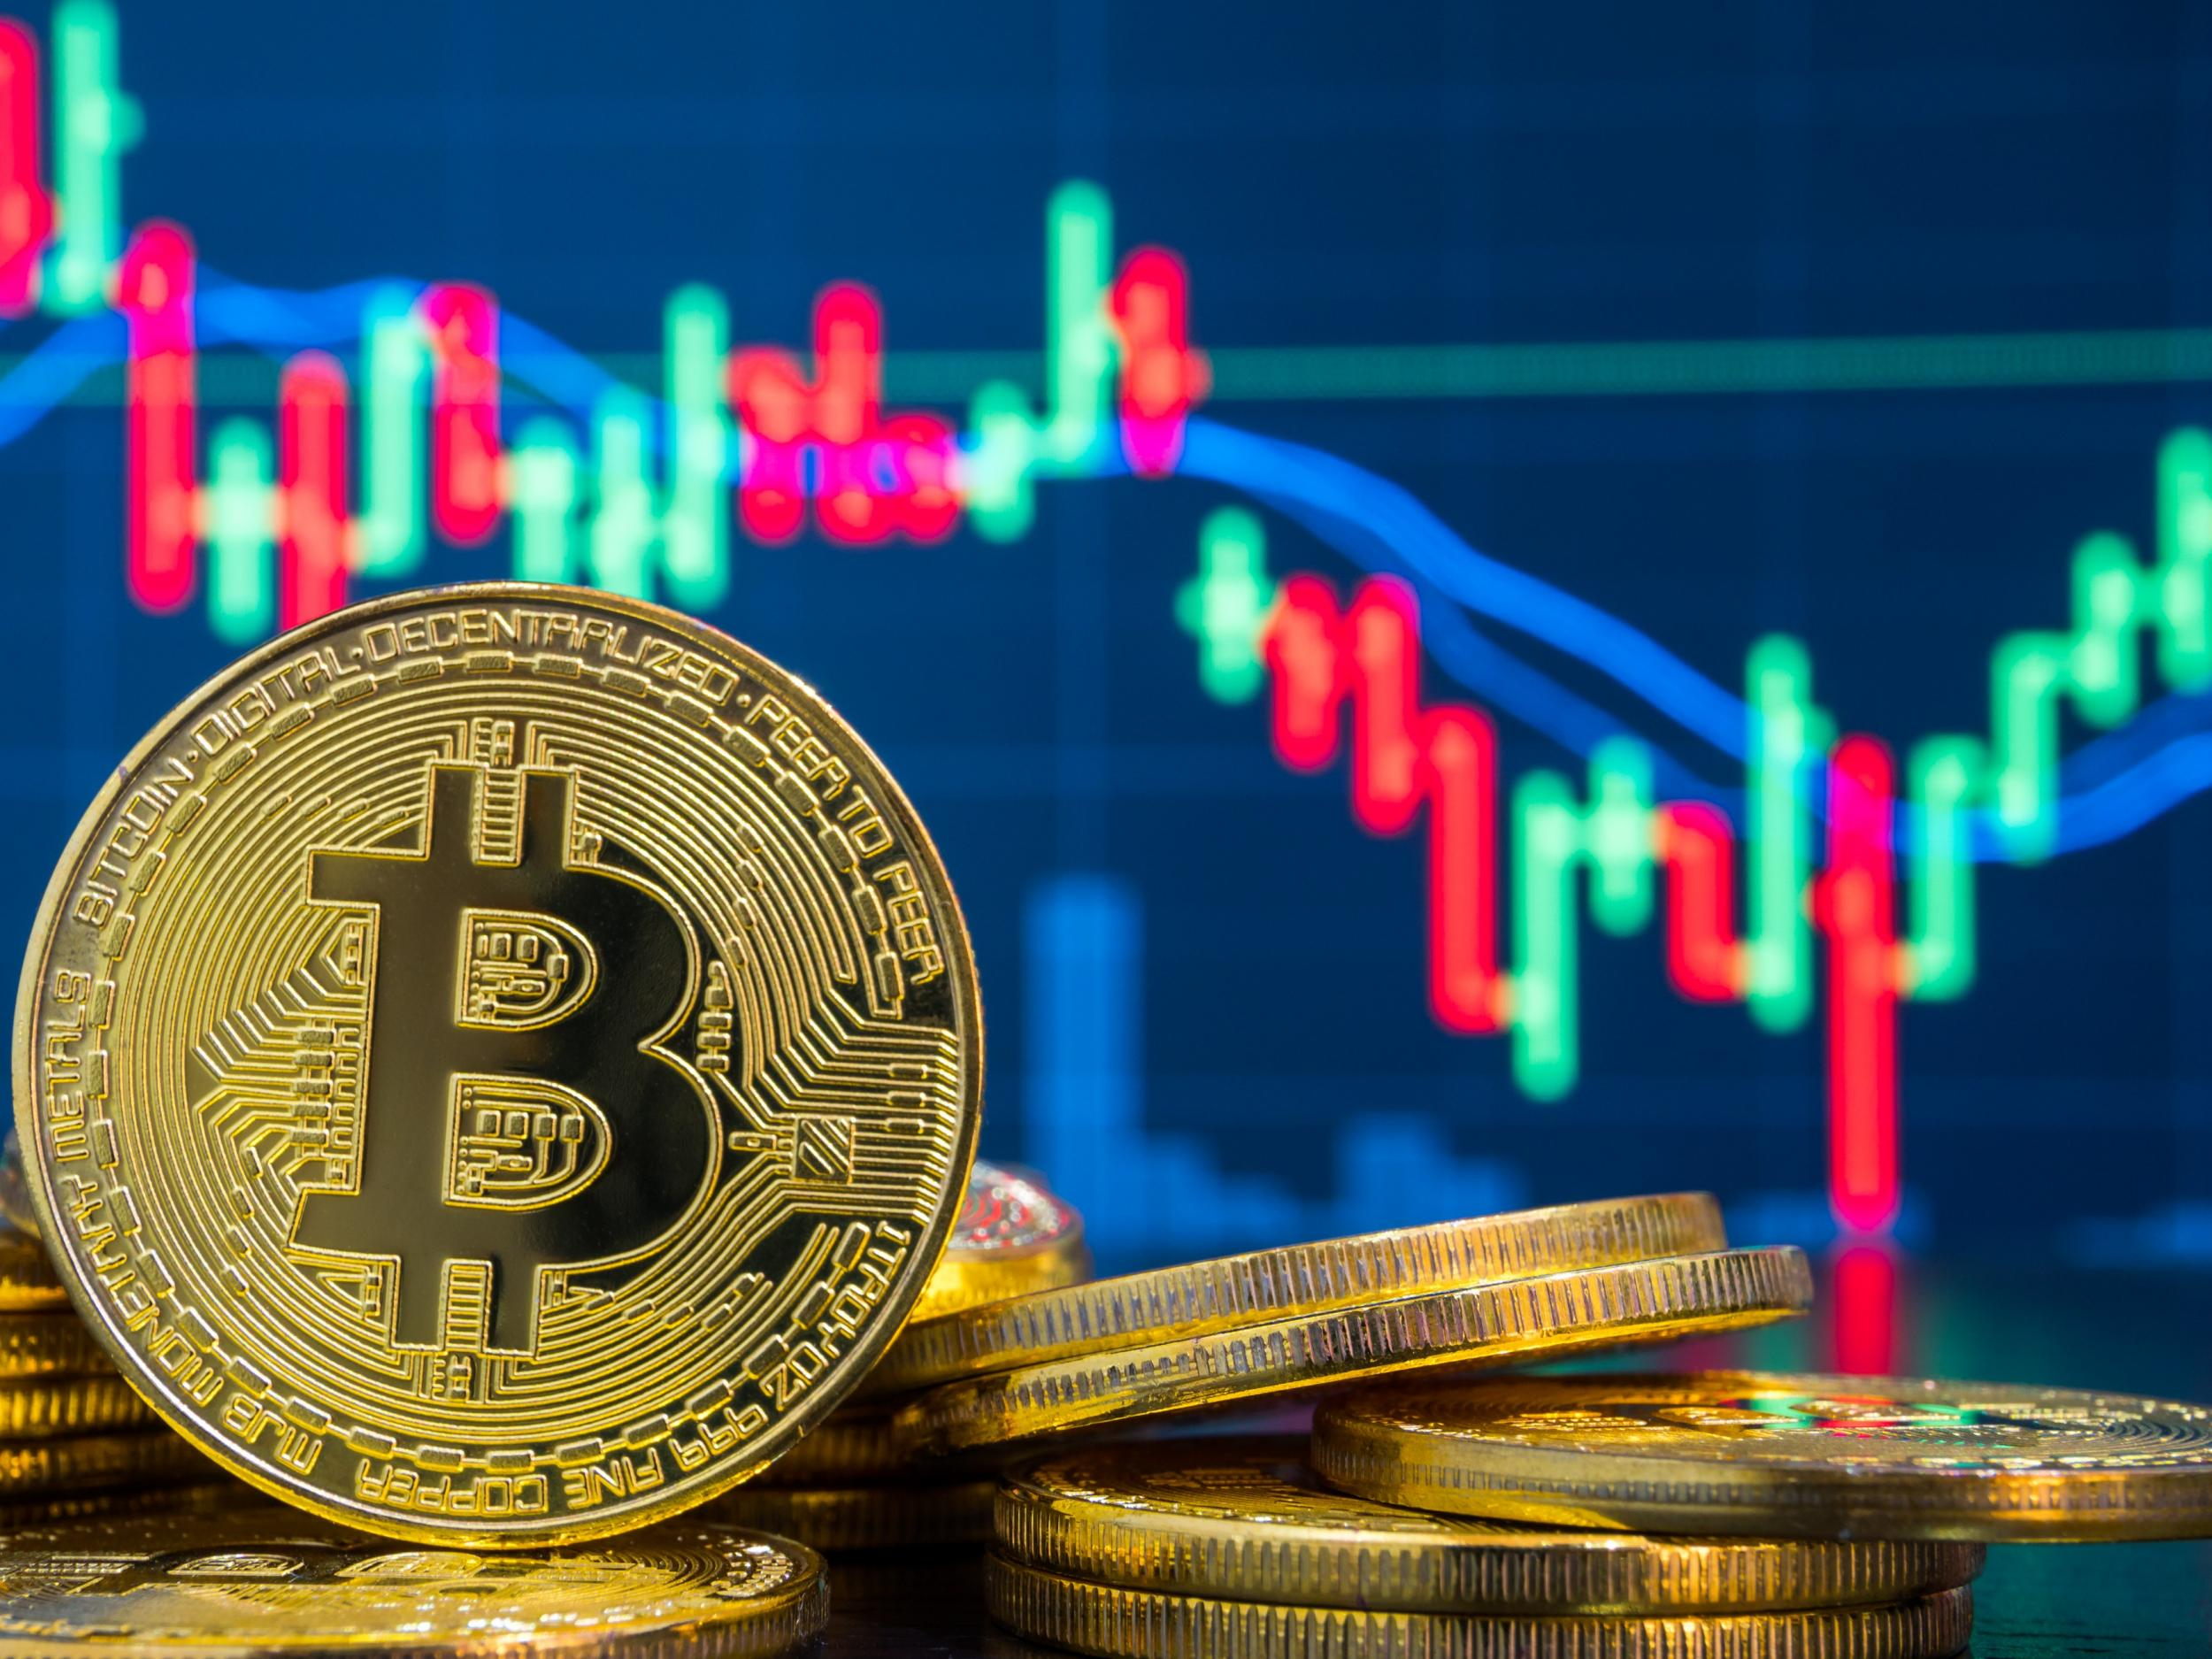 the powerful space with Bitcoin currency